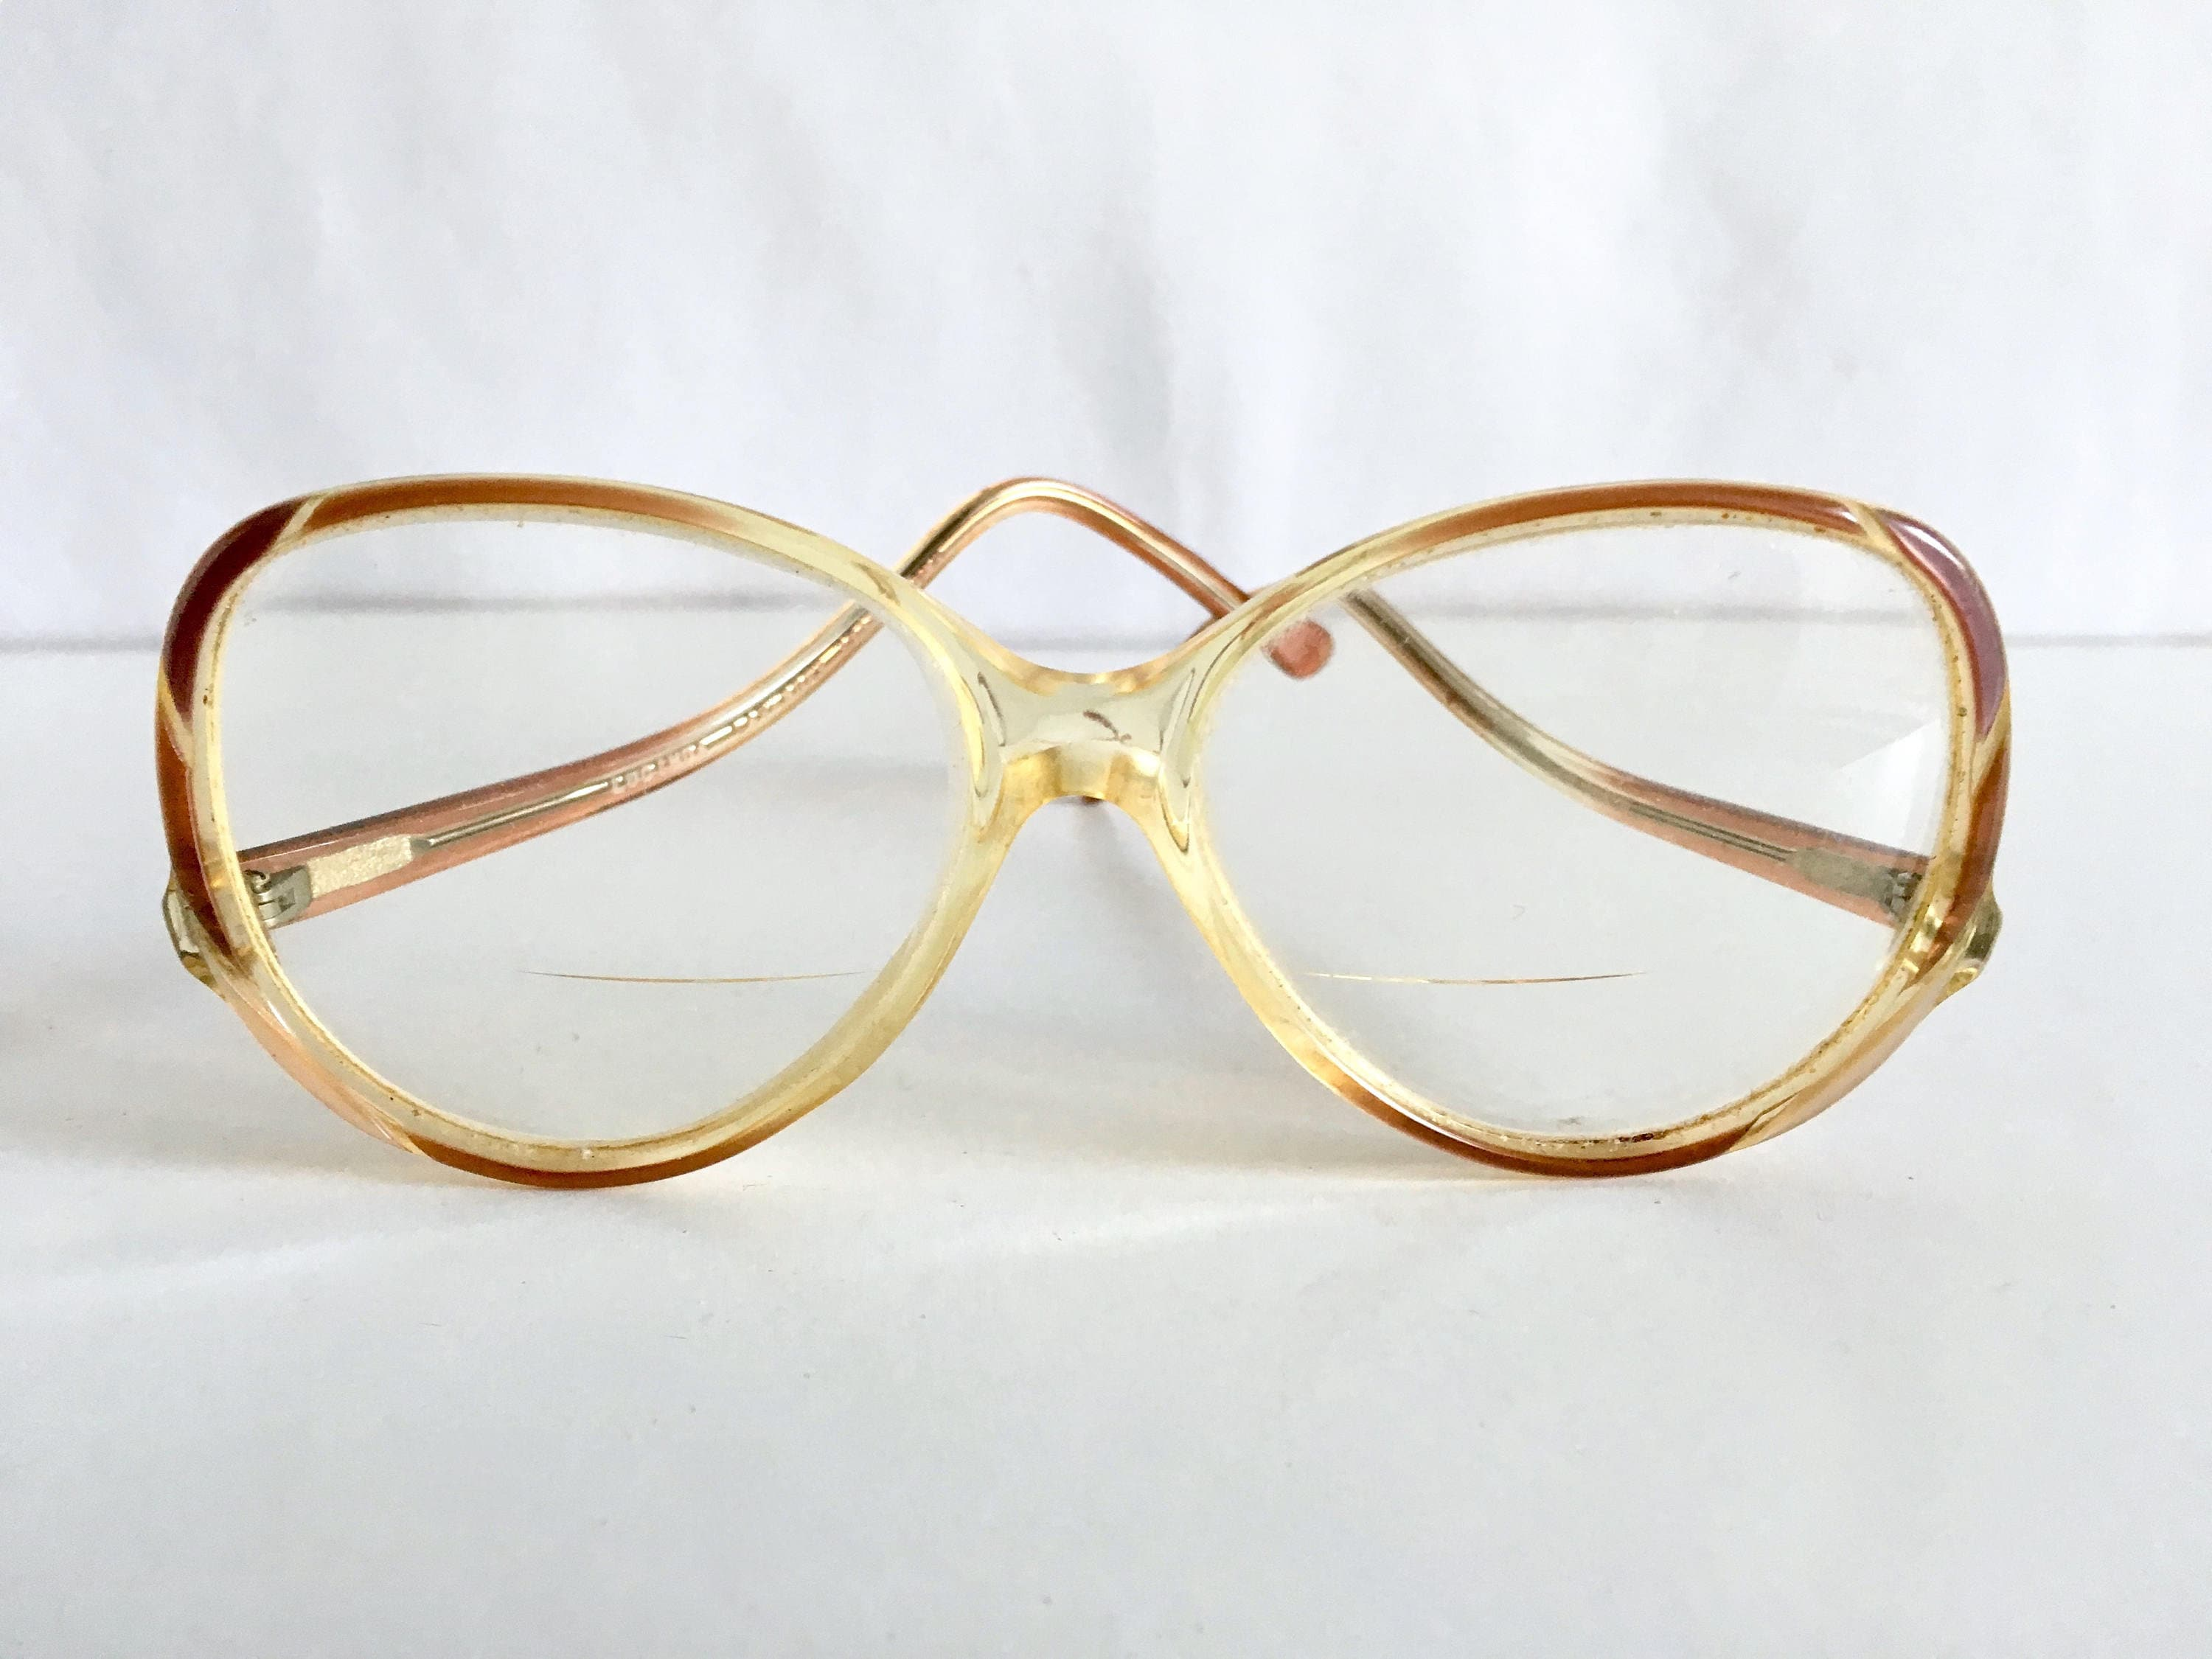 f1db011cf679 Vintage eyewear womens glasses frames rounded jpg 3000x2250 Glasses from  the 80s